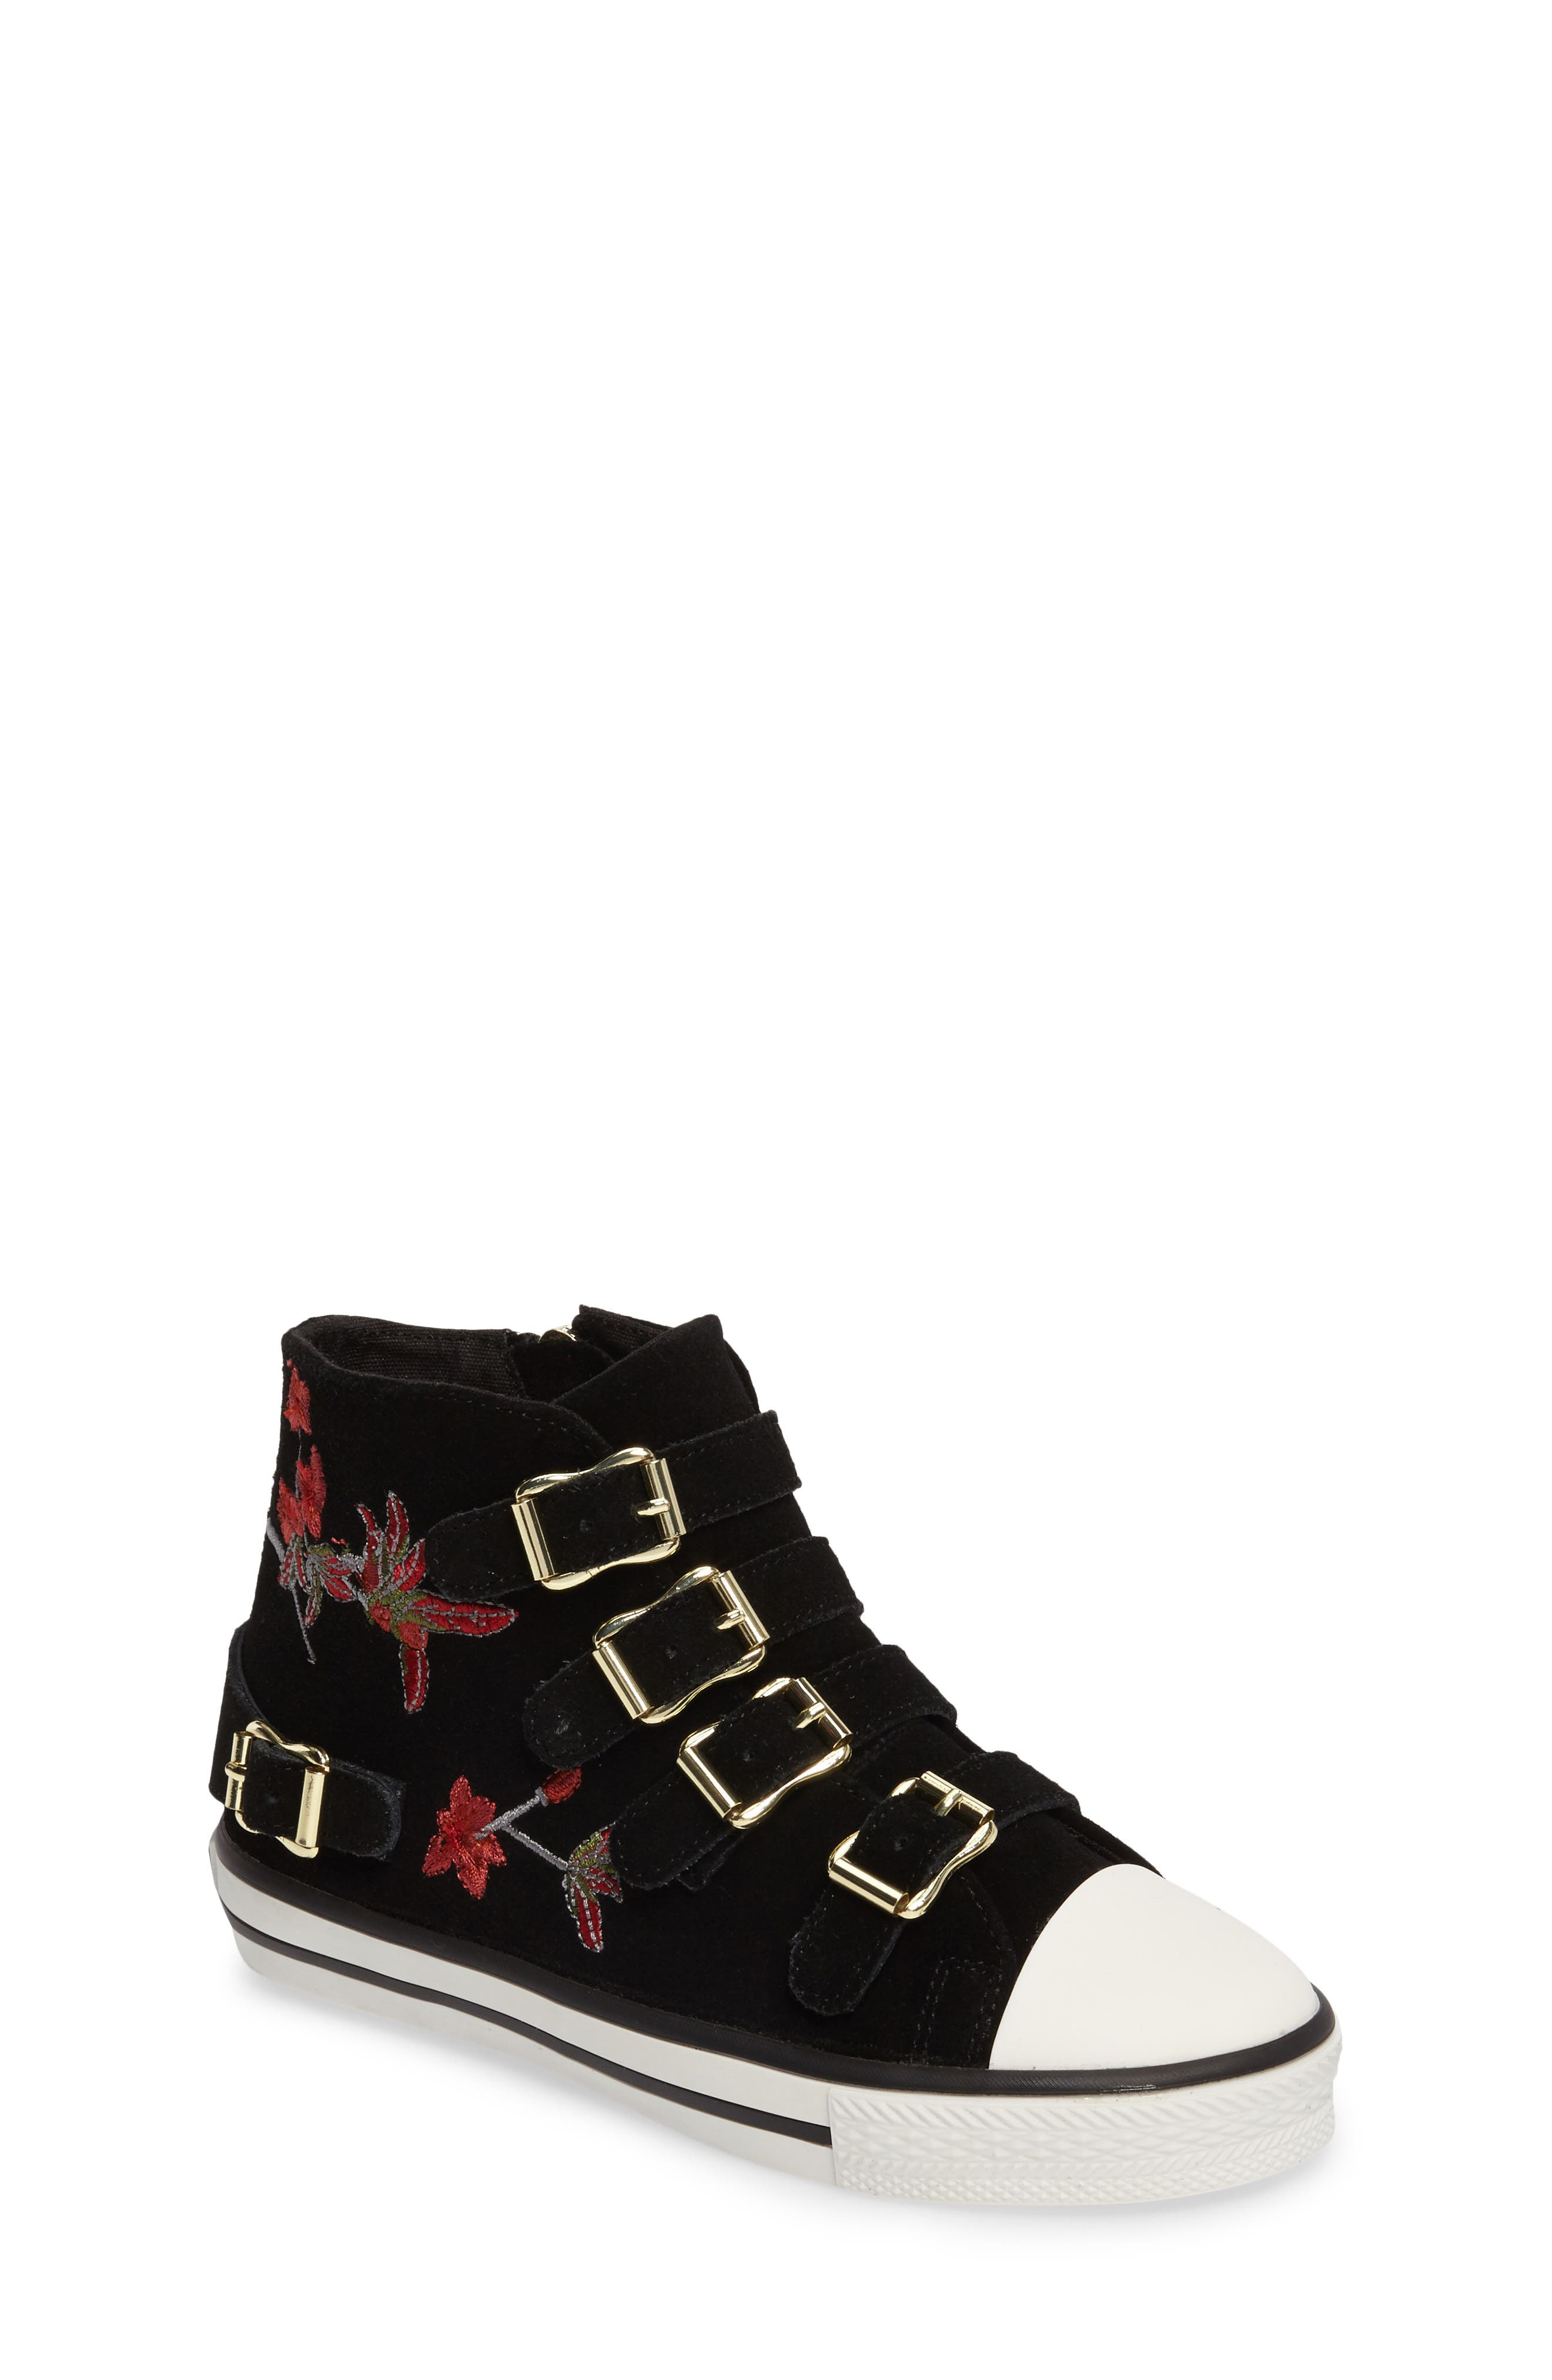 Vava Flowers Embroidered High Top Sneaker,                             Main thumbnail 1, color,                             001